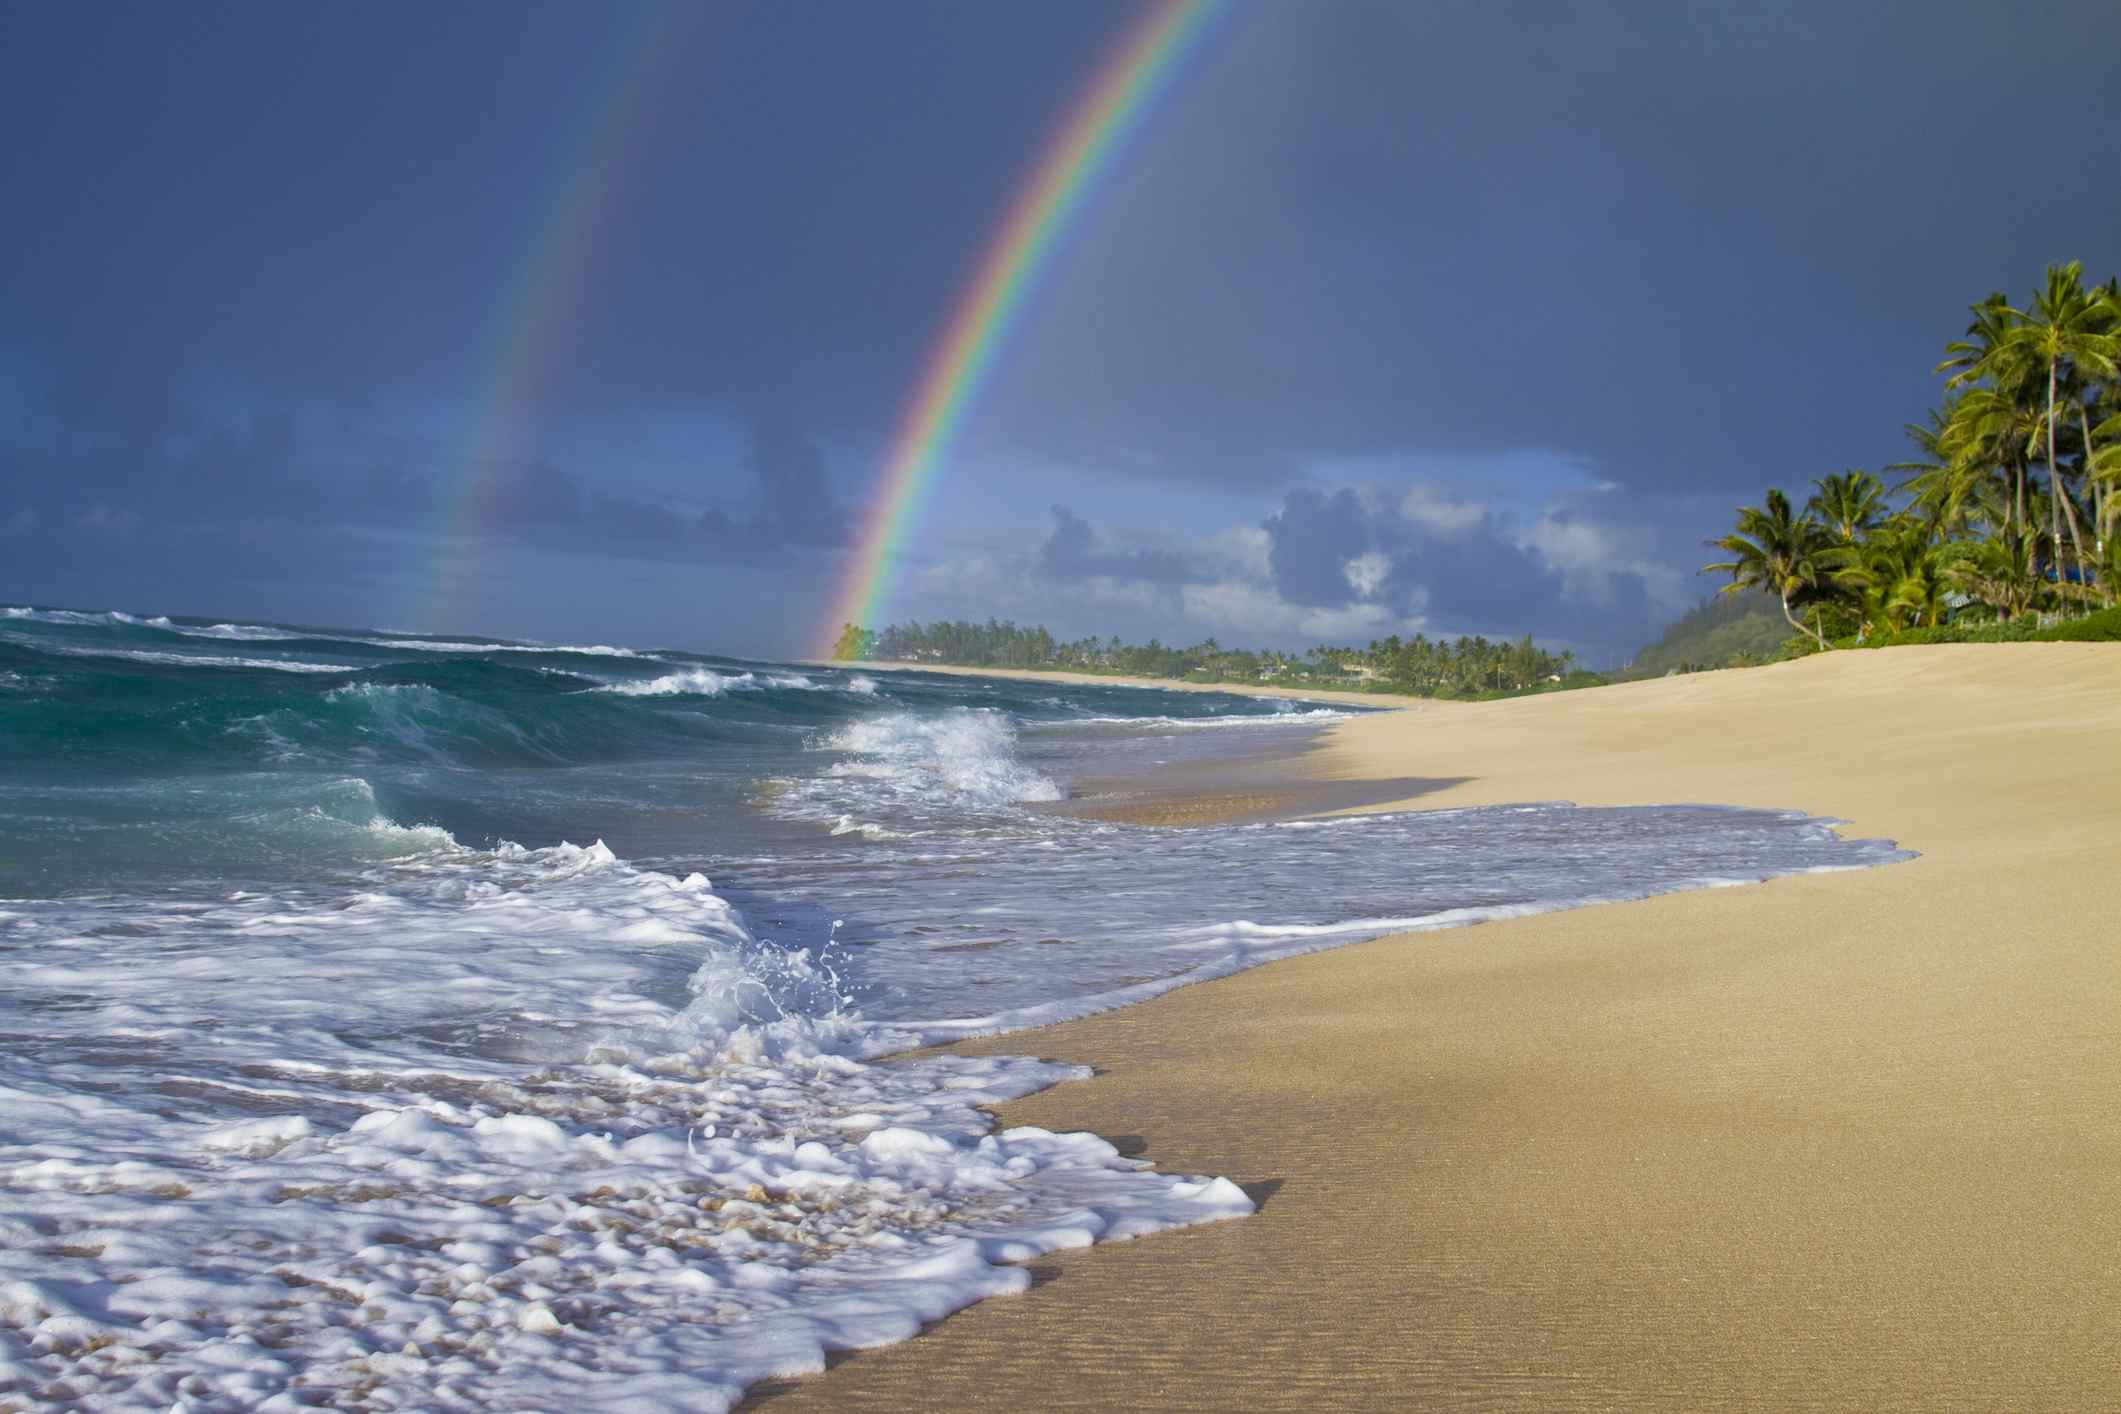 Double rainbow over Rocky Point, on the north shore of Oahu, Hawaii